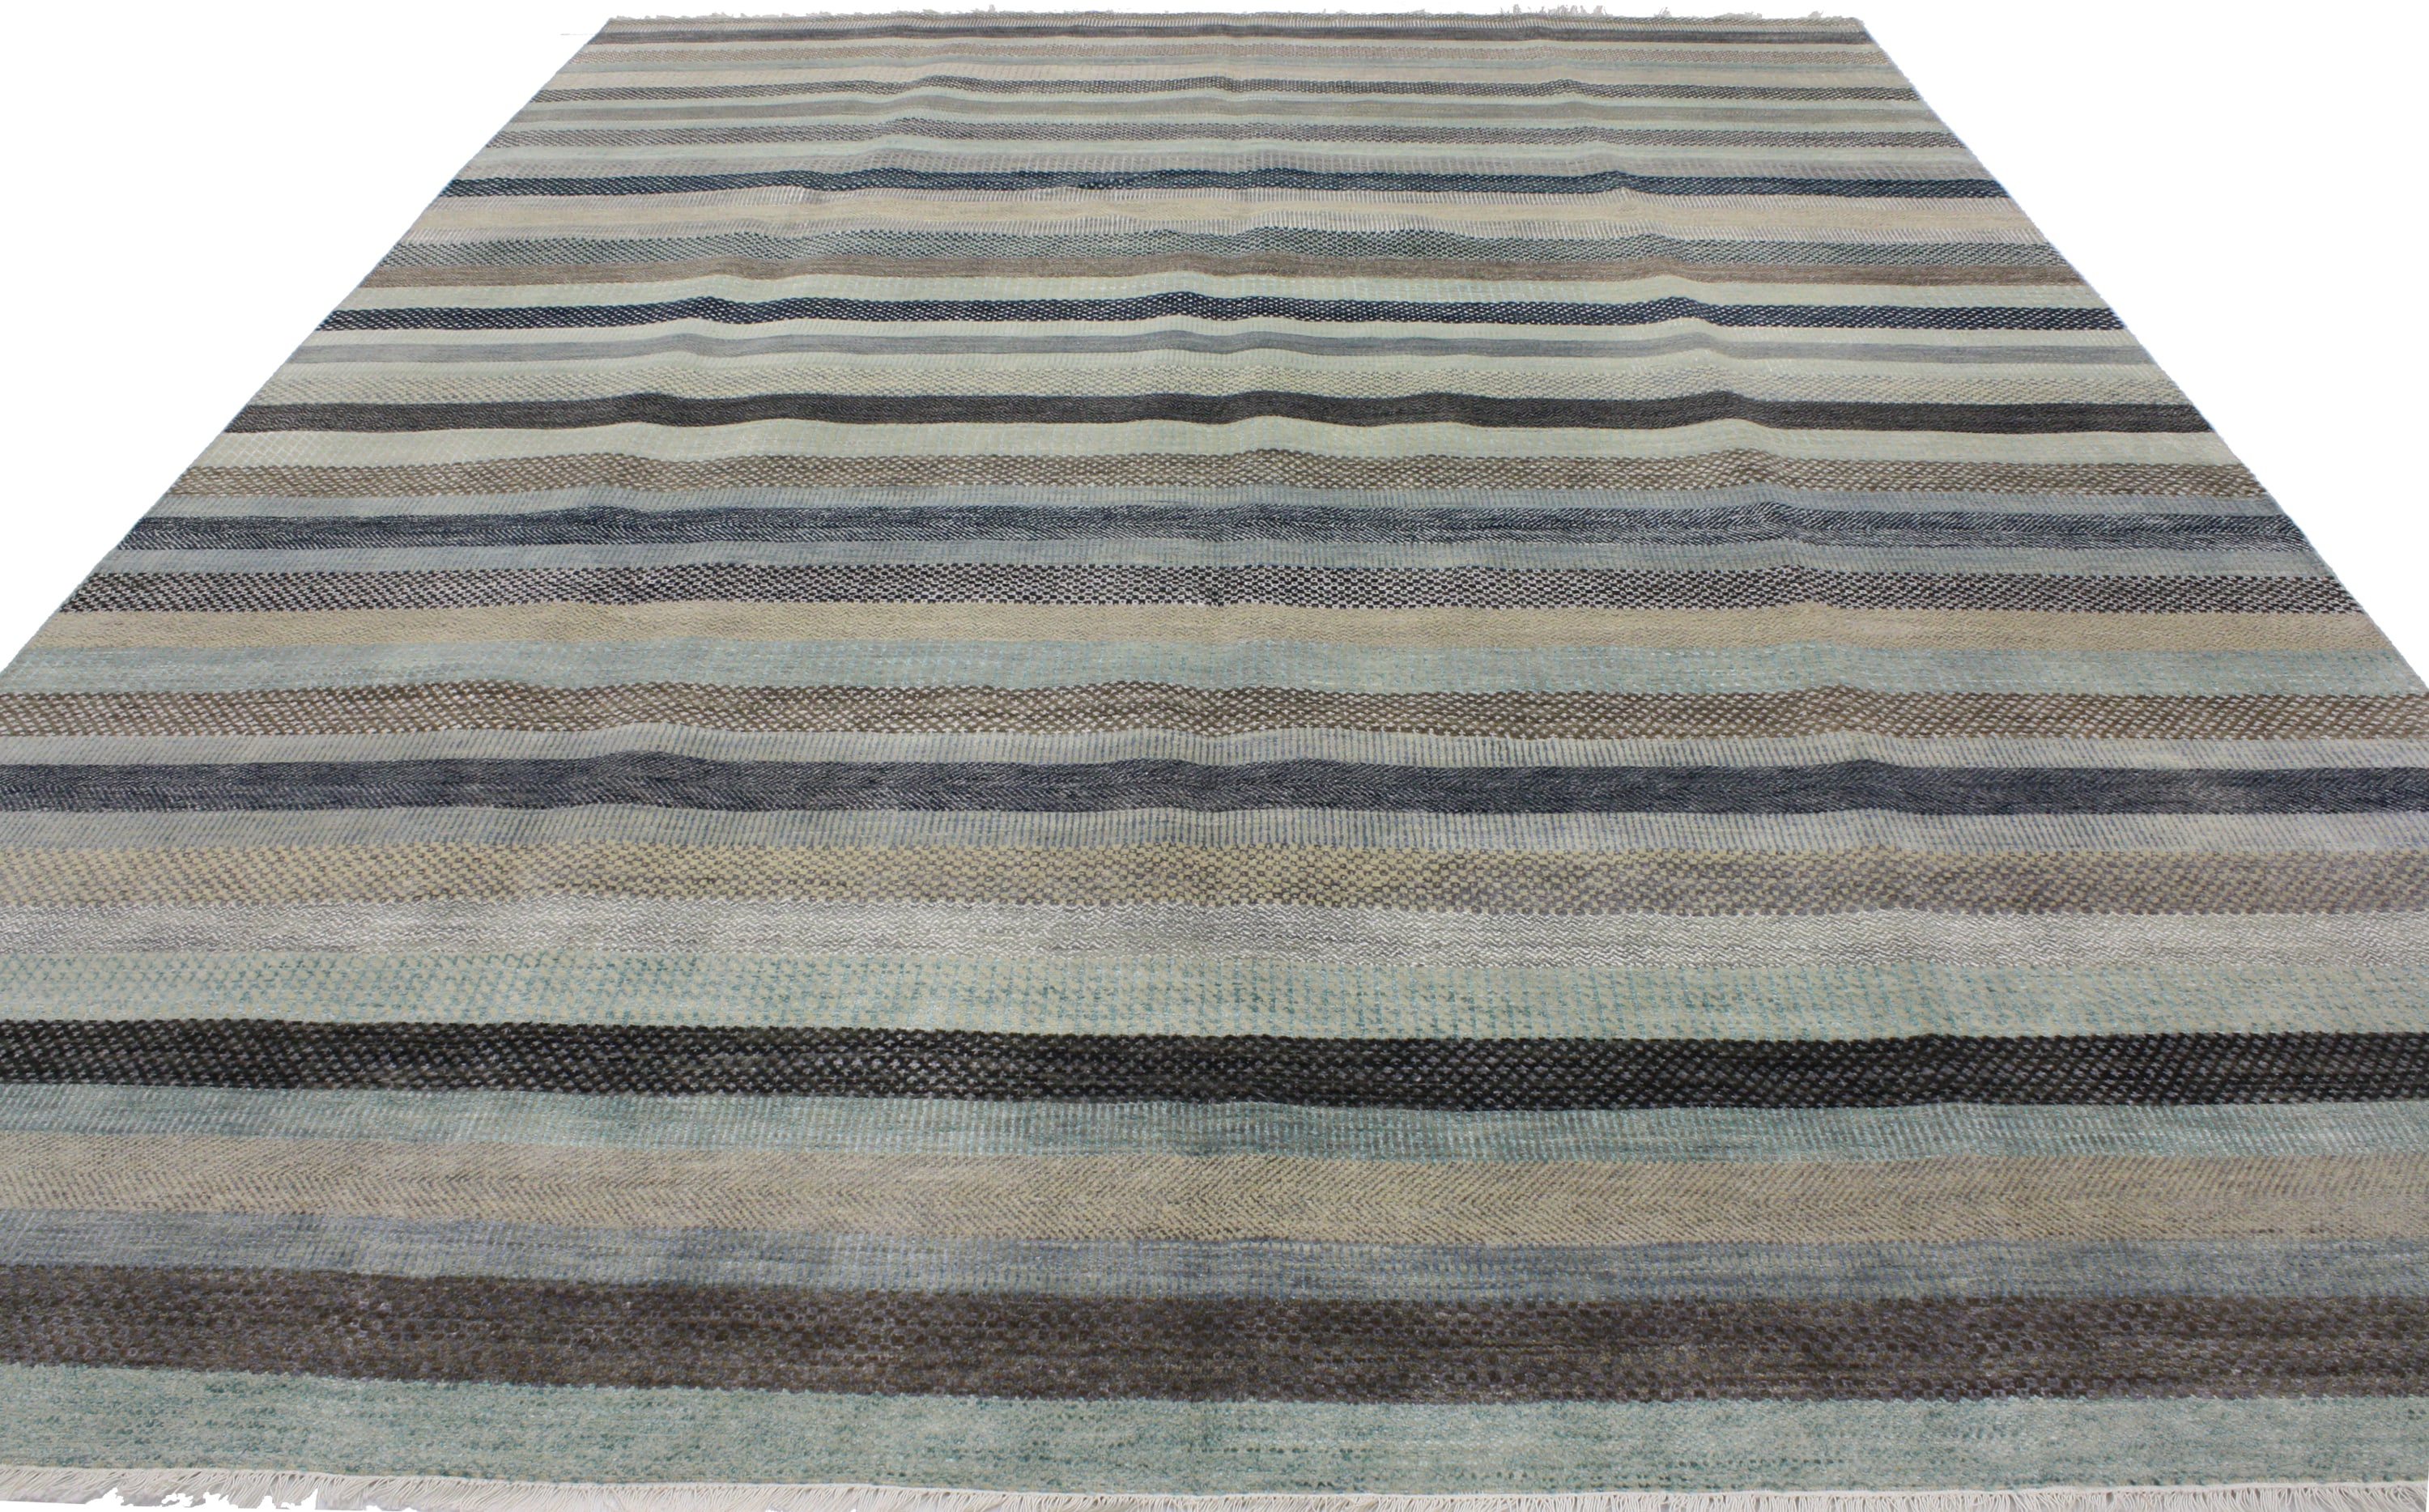 Transitional Grass Cloth Pattern Area Rug with Modern Hamptons Chic Style